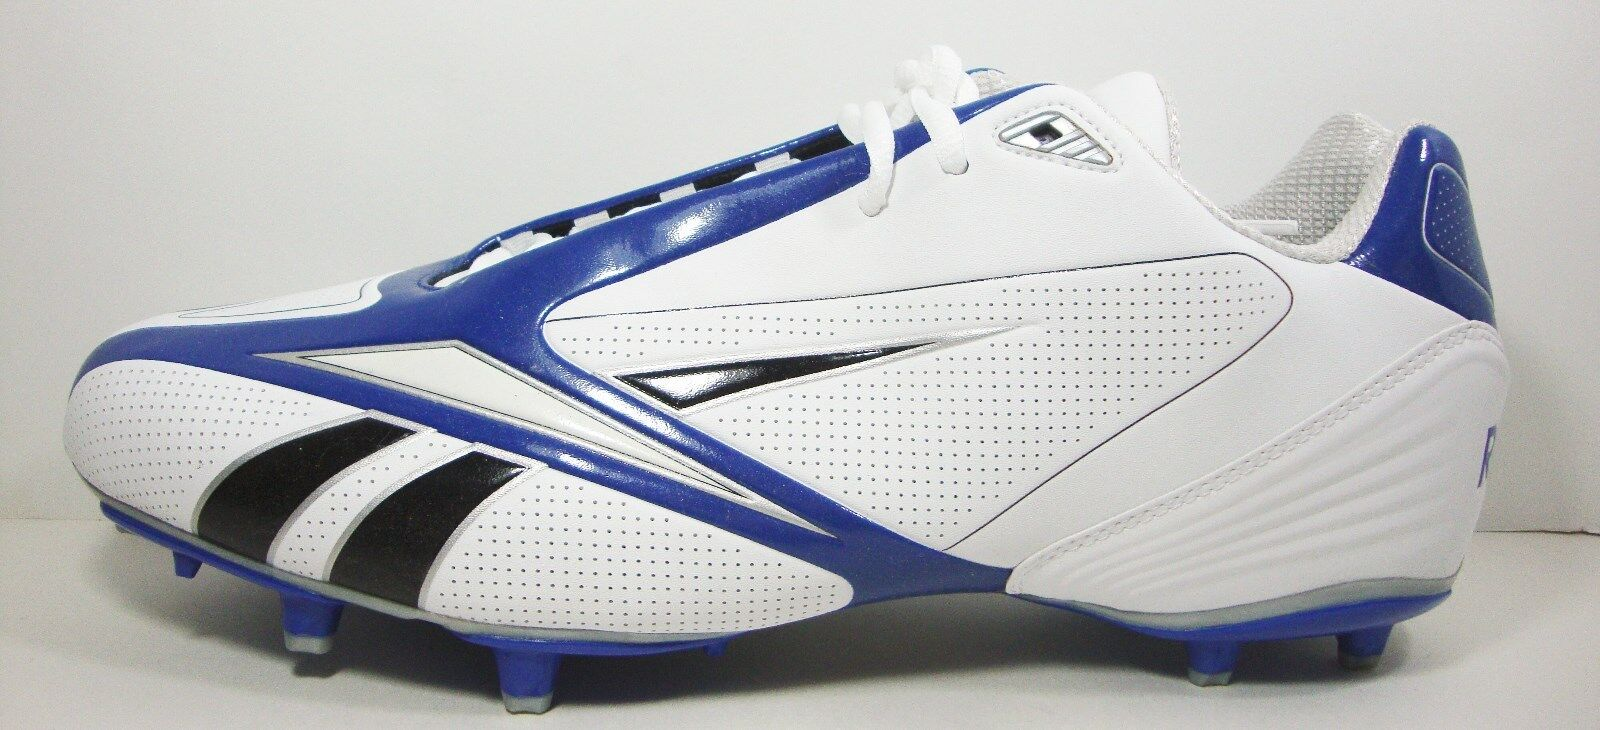 6e9a1e0b8dc Reebok Speed III Low Cleats Mens 15 Football Burner ntmxoq7445-Men ...